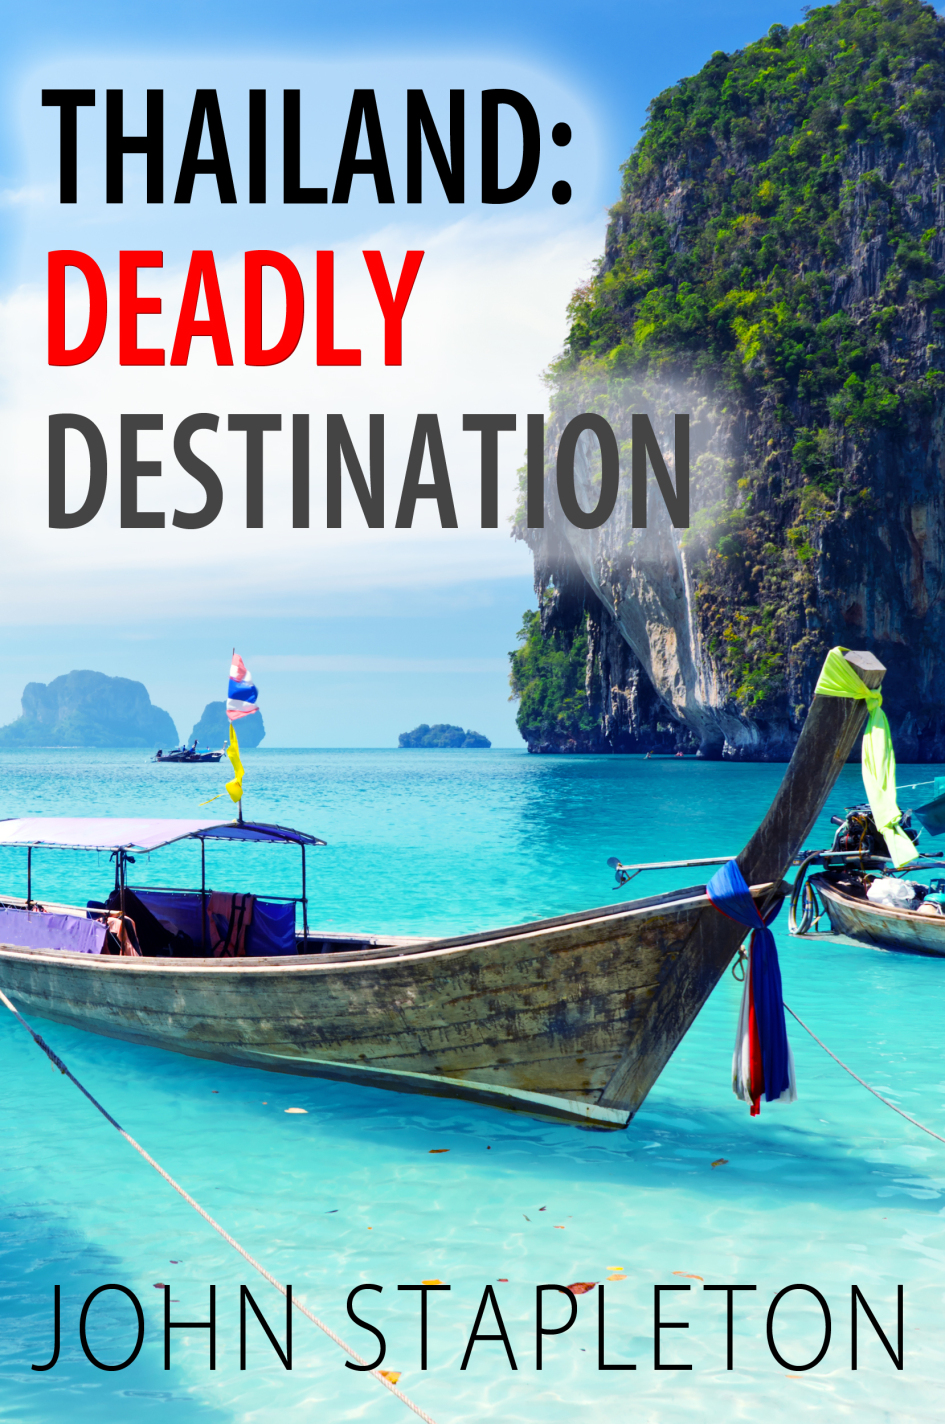 Thailand Deadly Destination by John Stapleton